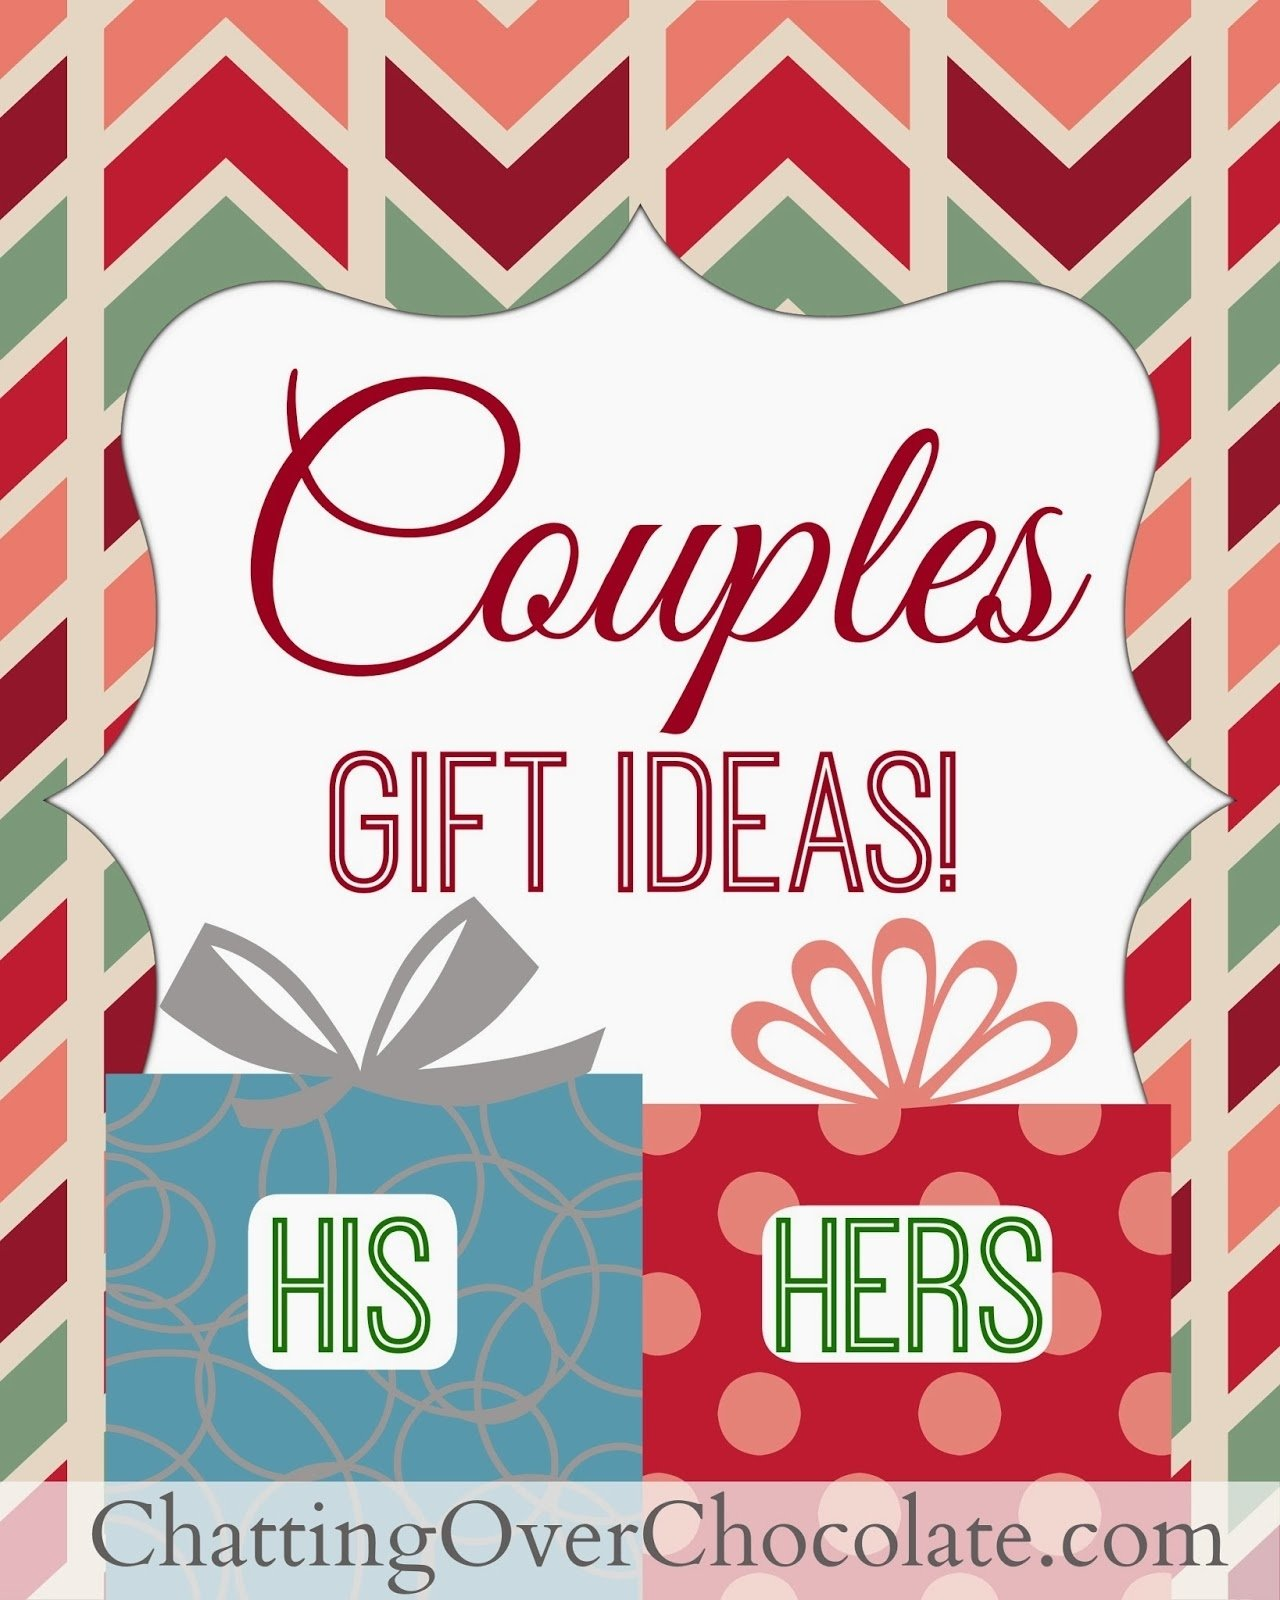 10 Cute His And Hers Gift Ideas chatting over chocolate his hers gift ideas couples gift giving 8